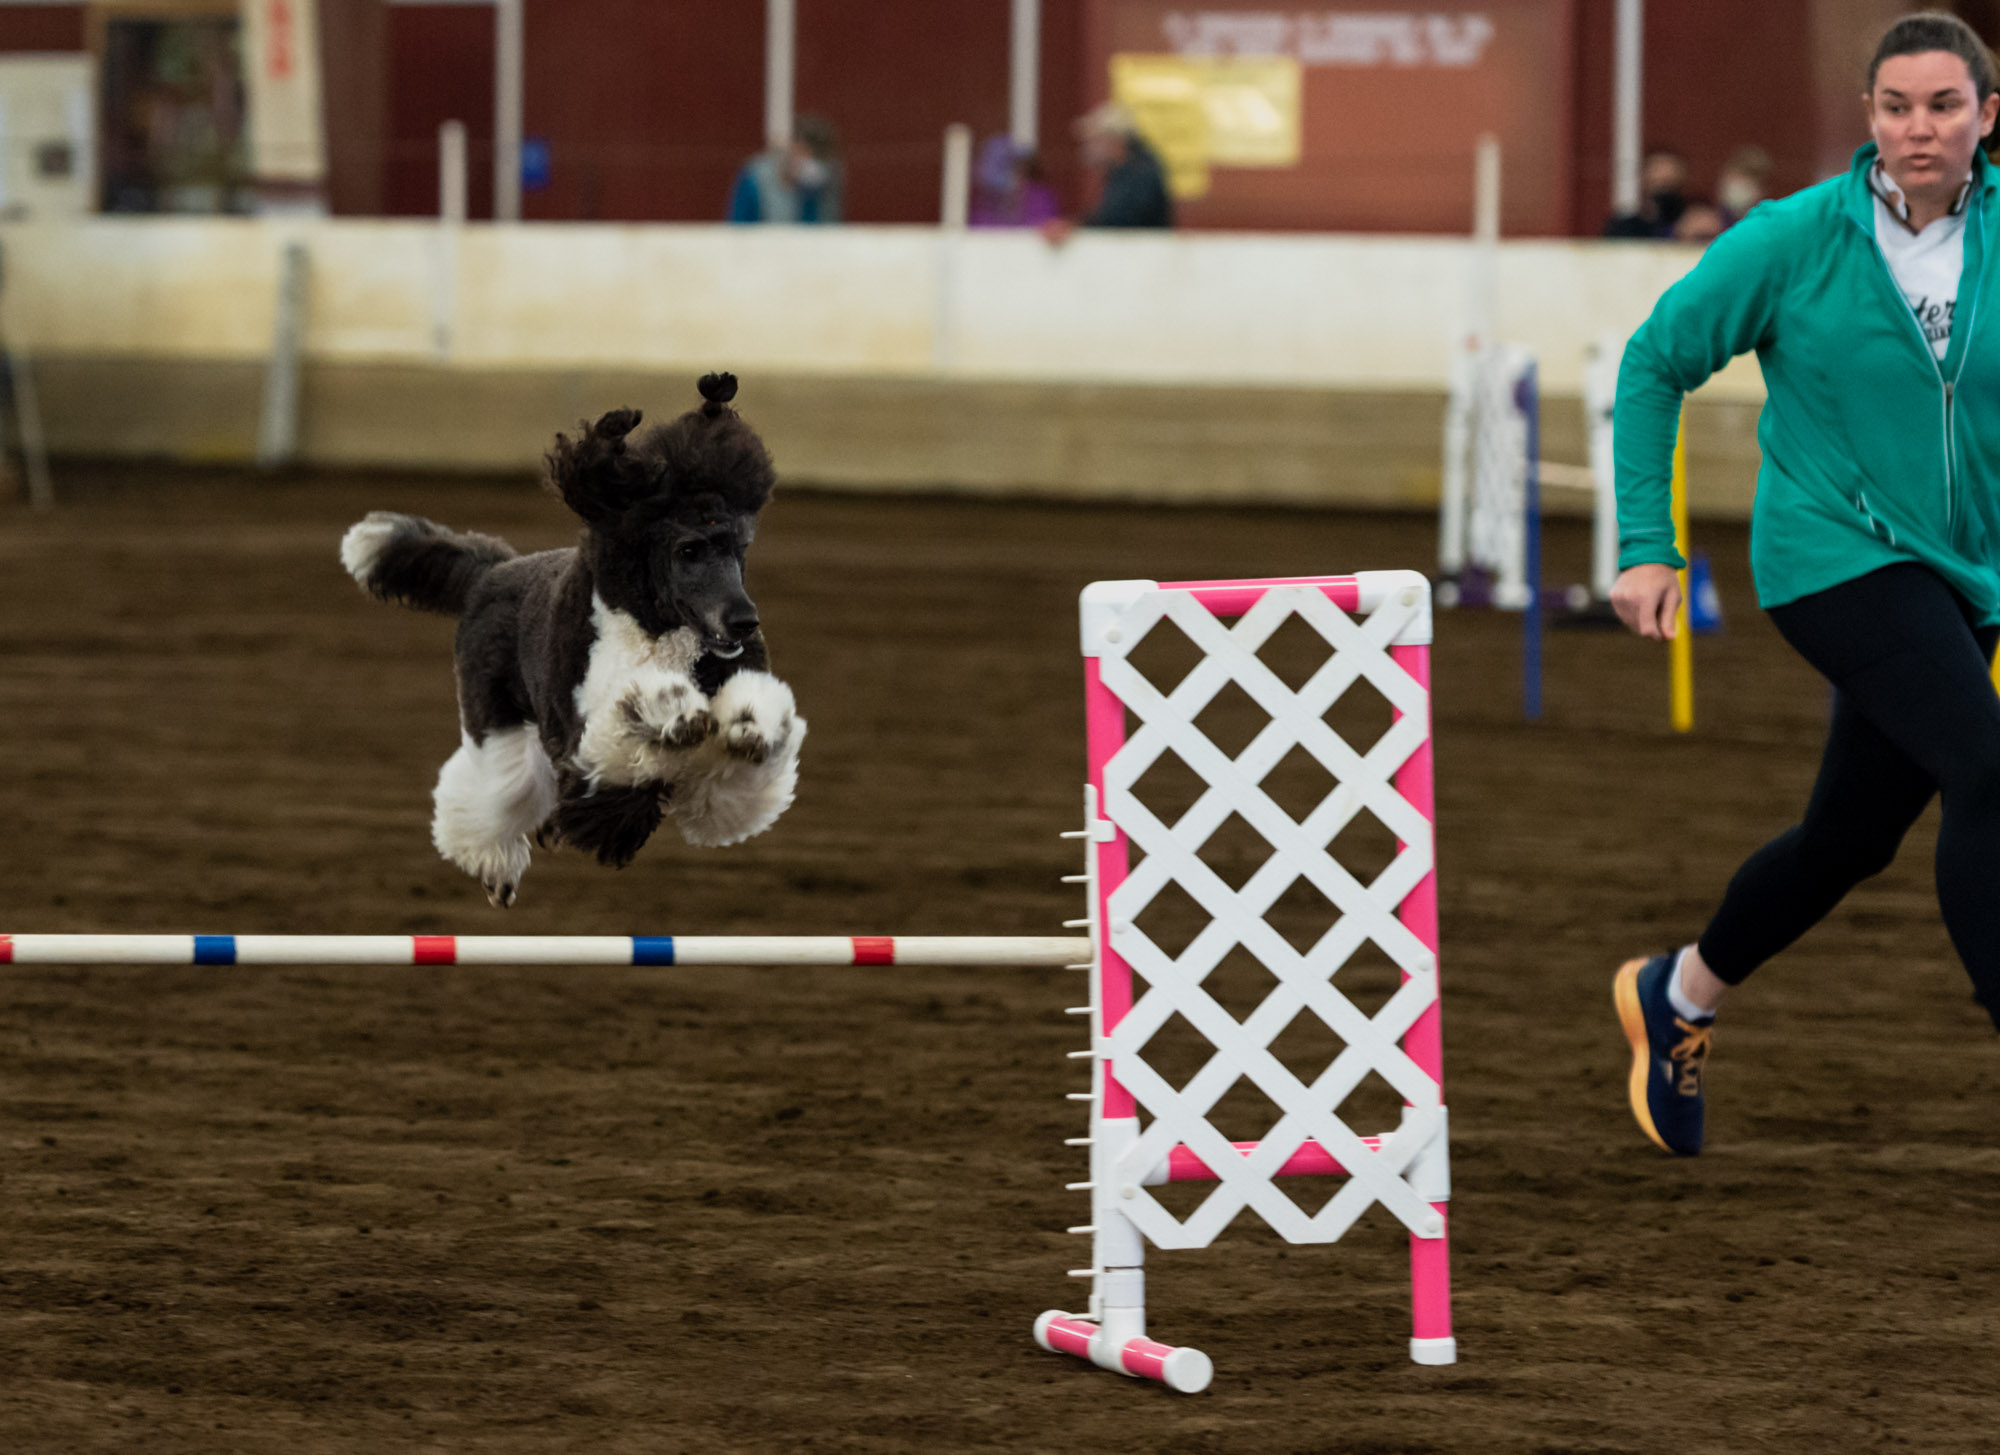 Zena, a 2-year-old poodle, jumps over a hurdle while trainer Abi Kitchens runs alongside at the Mt. Hood Doberman Pinscher Club agility trials on Saturday, Oct. 9, 2021, at the Dr. Jack Giesy Equestrian Arena in Ridgefield.